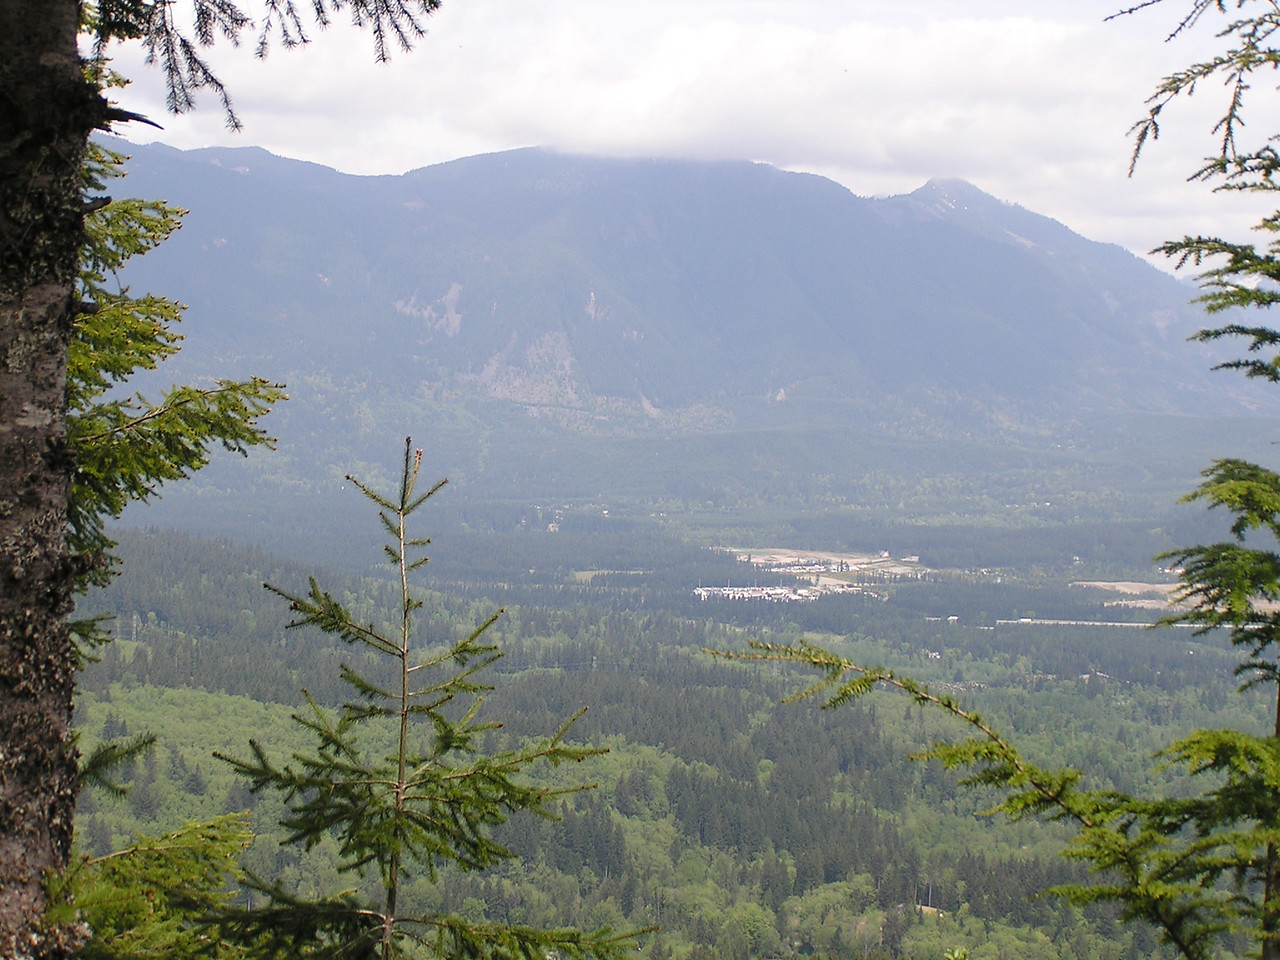 Looking north from Cedar Butte across the valley.  The interstate highway I-90 is the horizontal line on the right side of the picture.